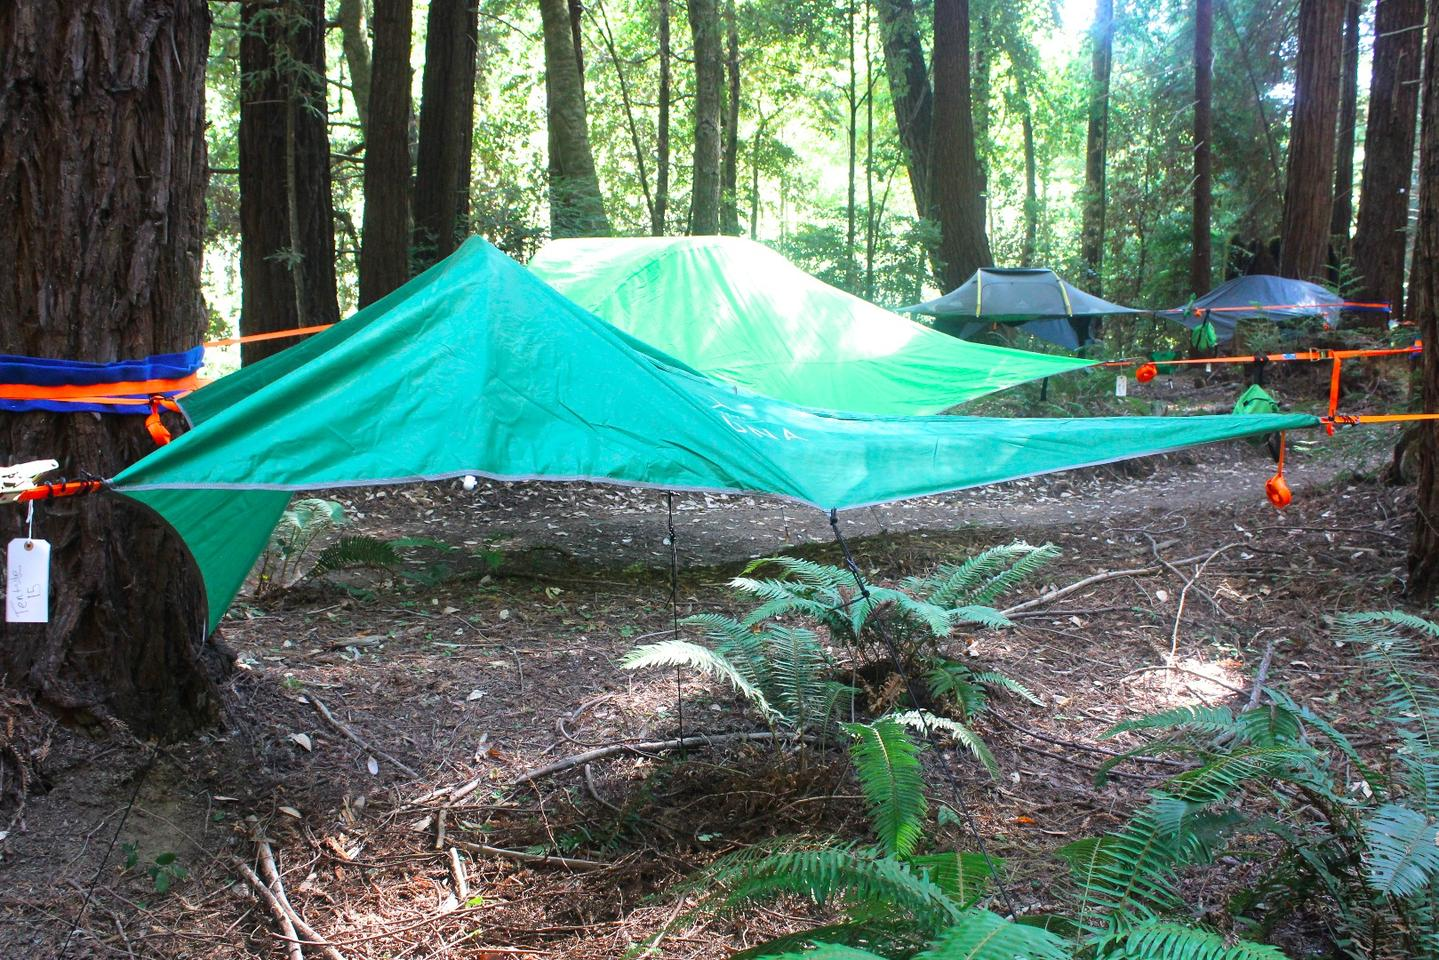 We walked through the Tentsile village to find our assigned tent